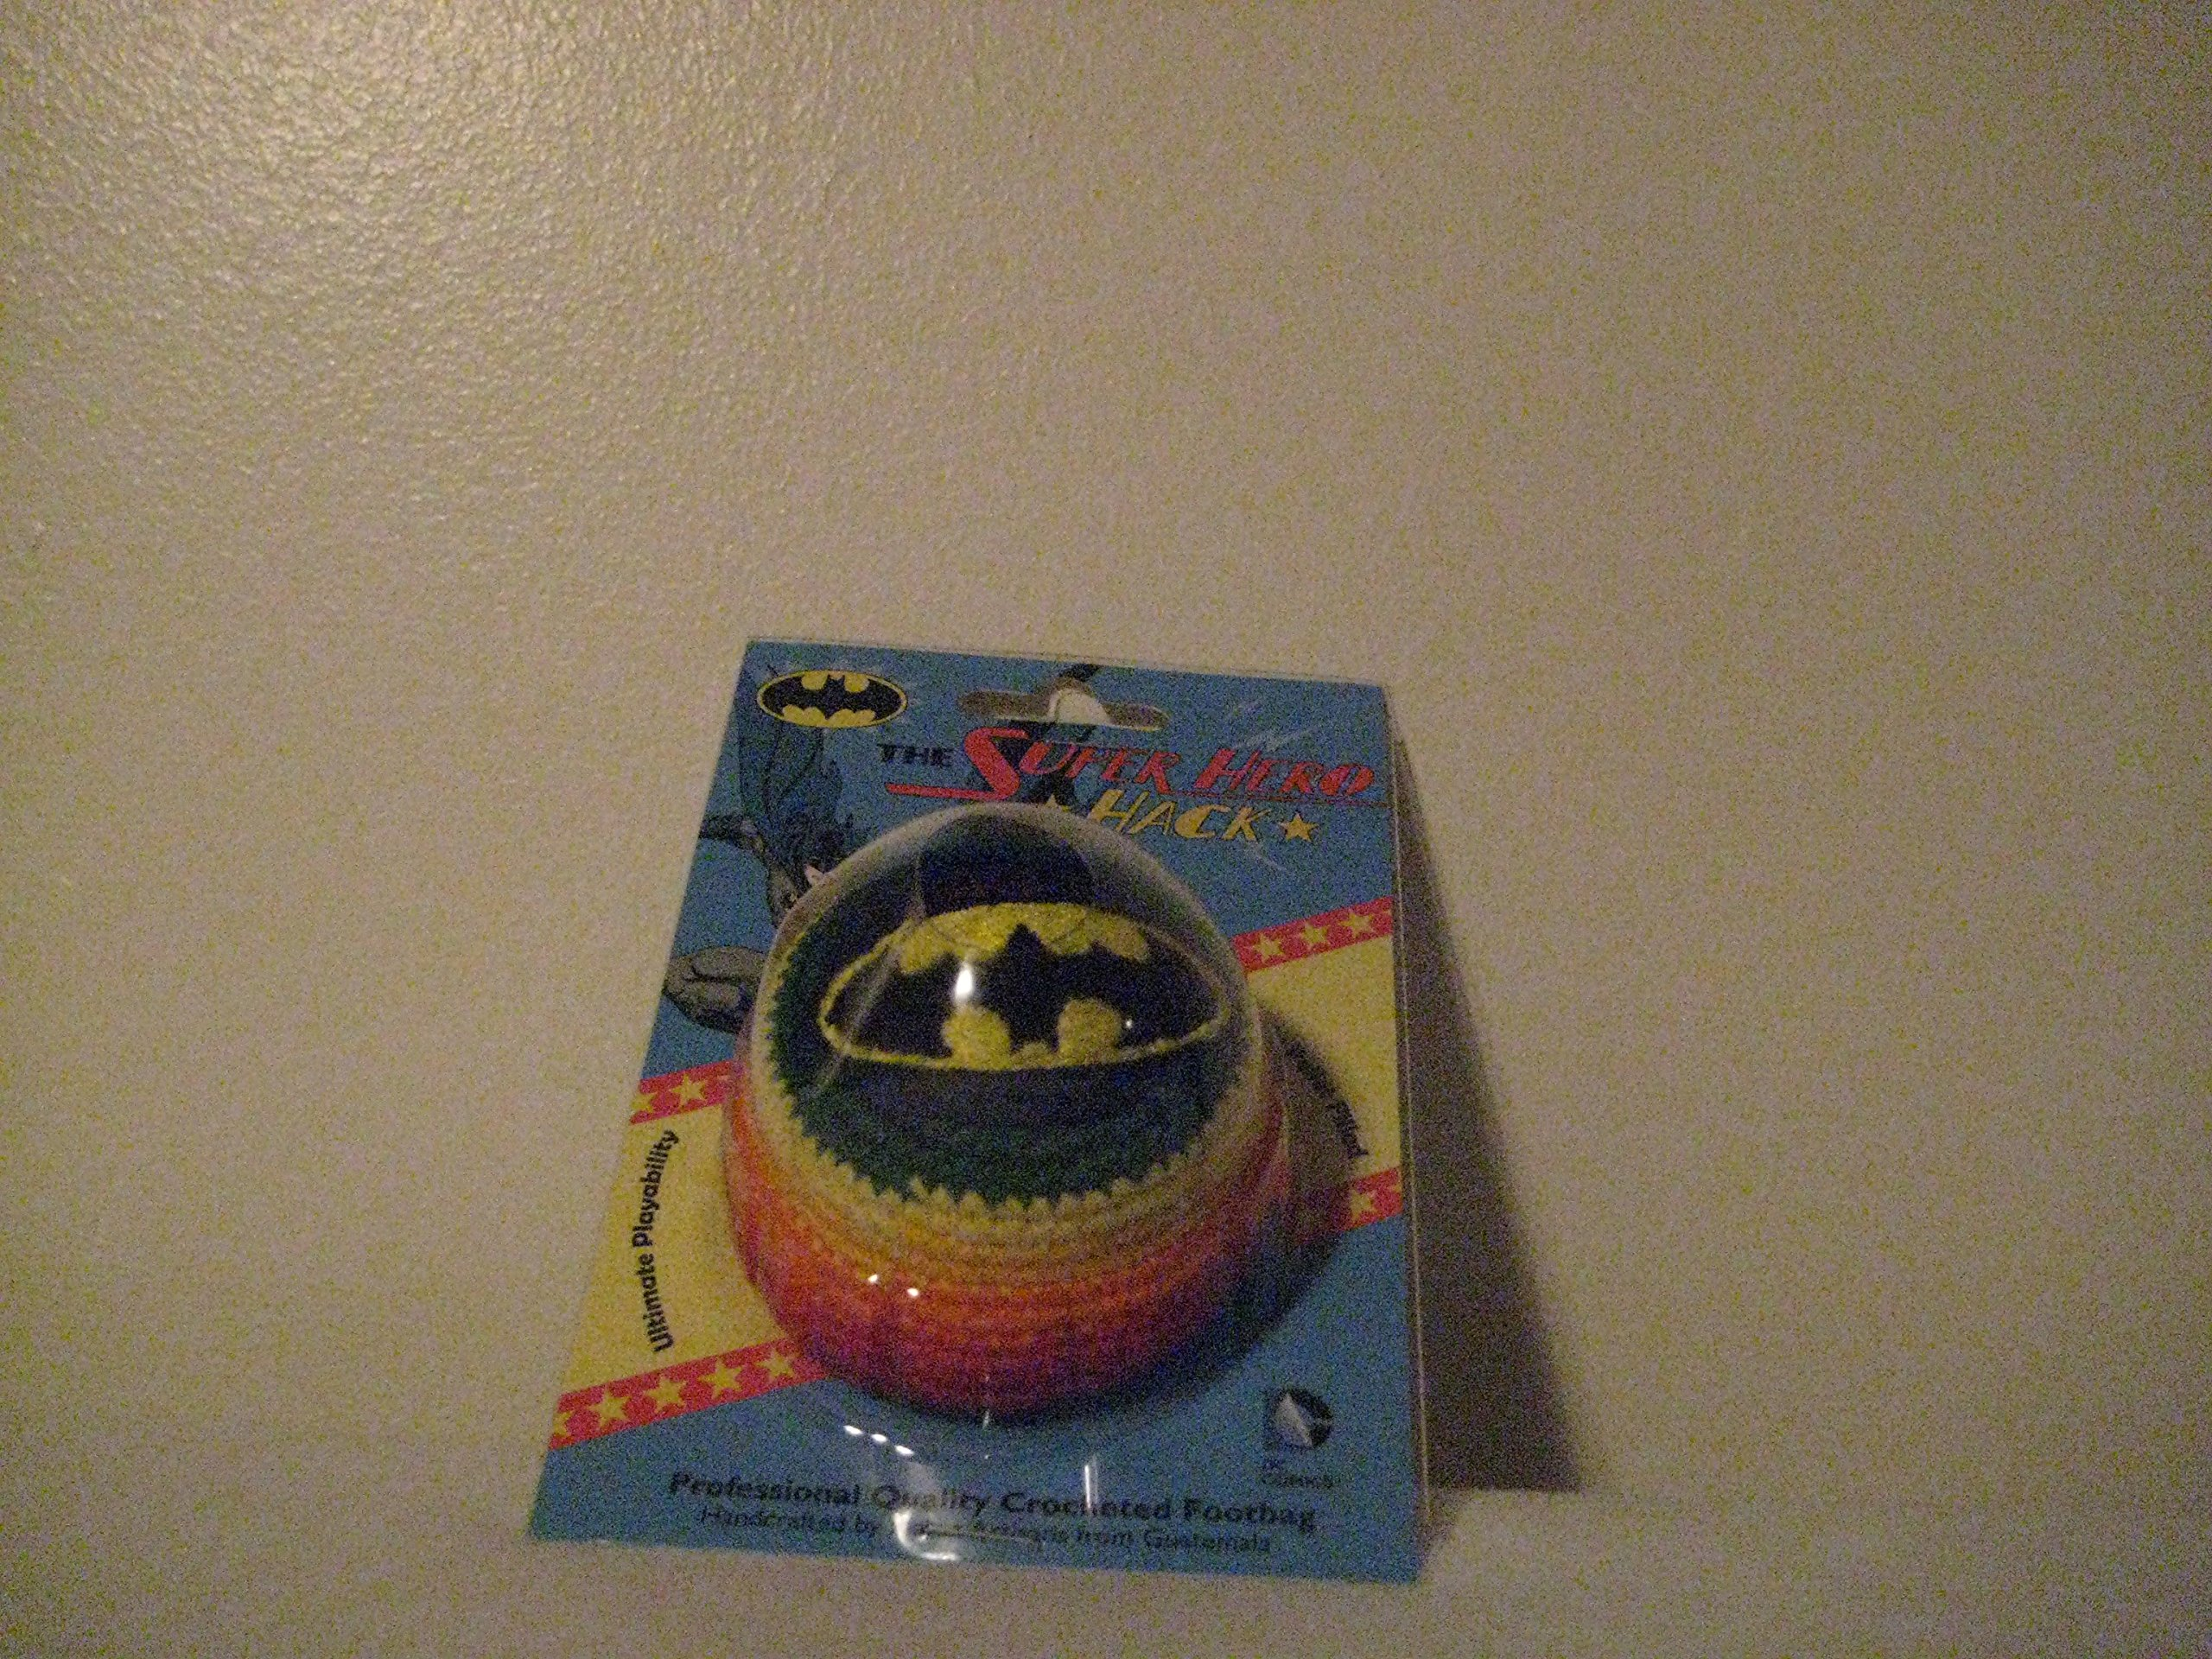 Super Hero Embroidered Hacky Sack Footbag - Batman Logo by Adventure Trading